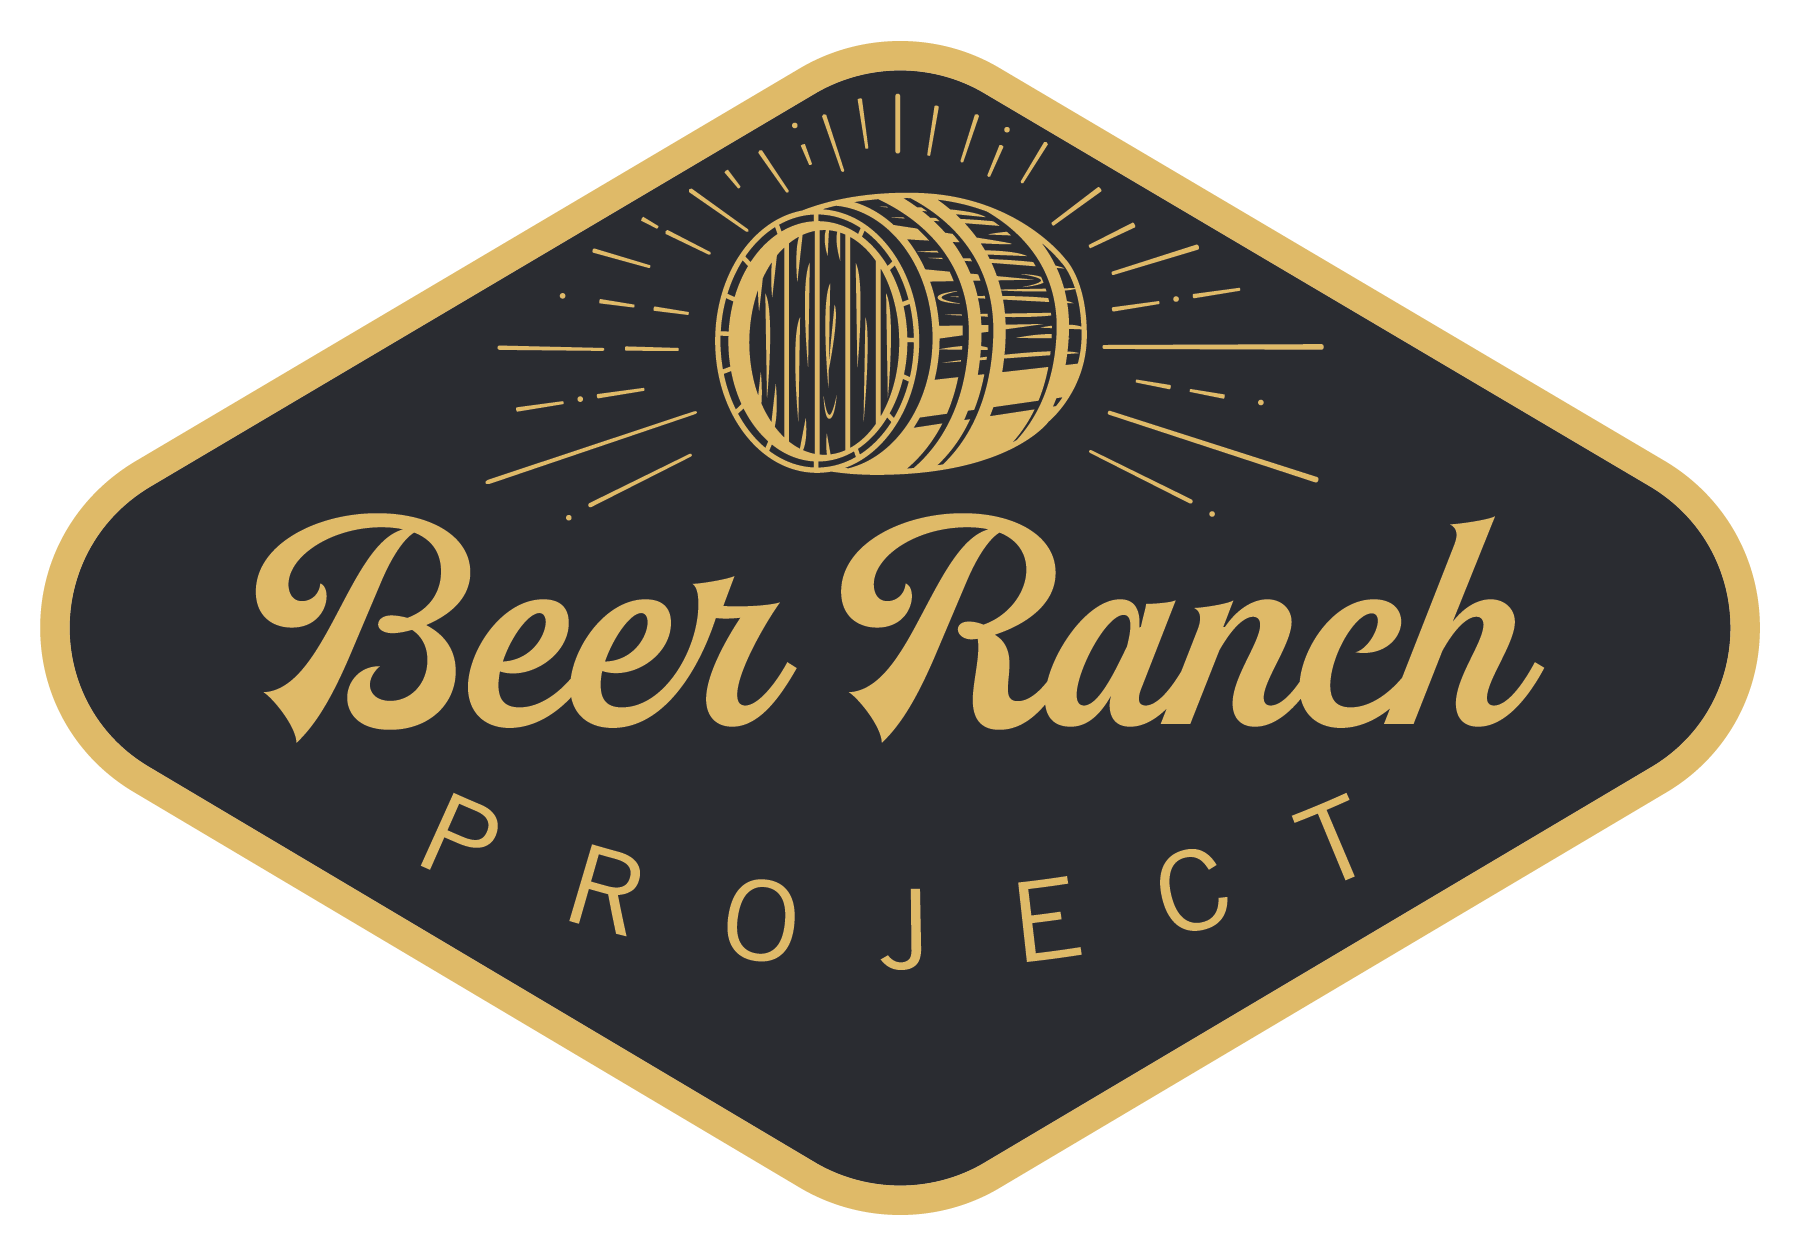 Beer Ranch.PNG